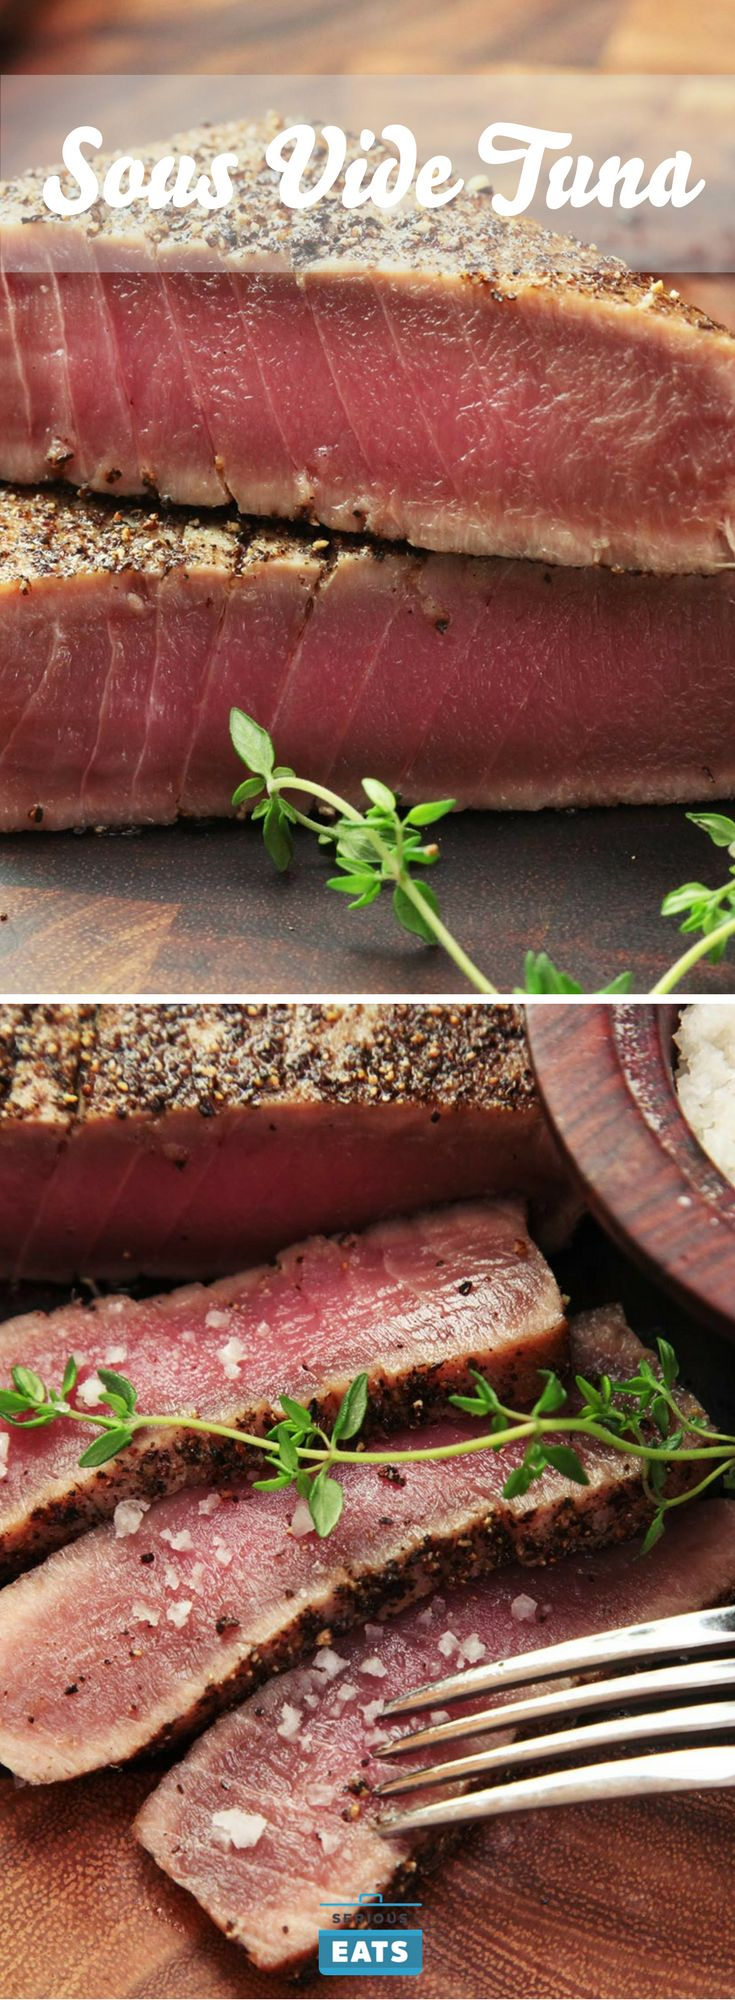 Sous vide is also a great way to prepare tuna to be served nearly raw, sashimi-style, or to be used in recipes where you'd typically use canned tuna, giving you better texture and flavor than any canned option.